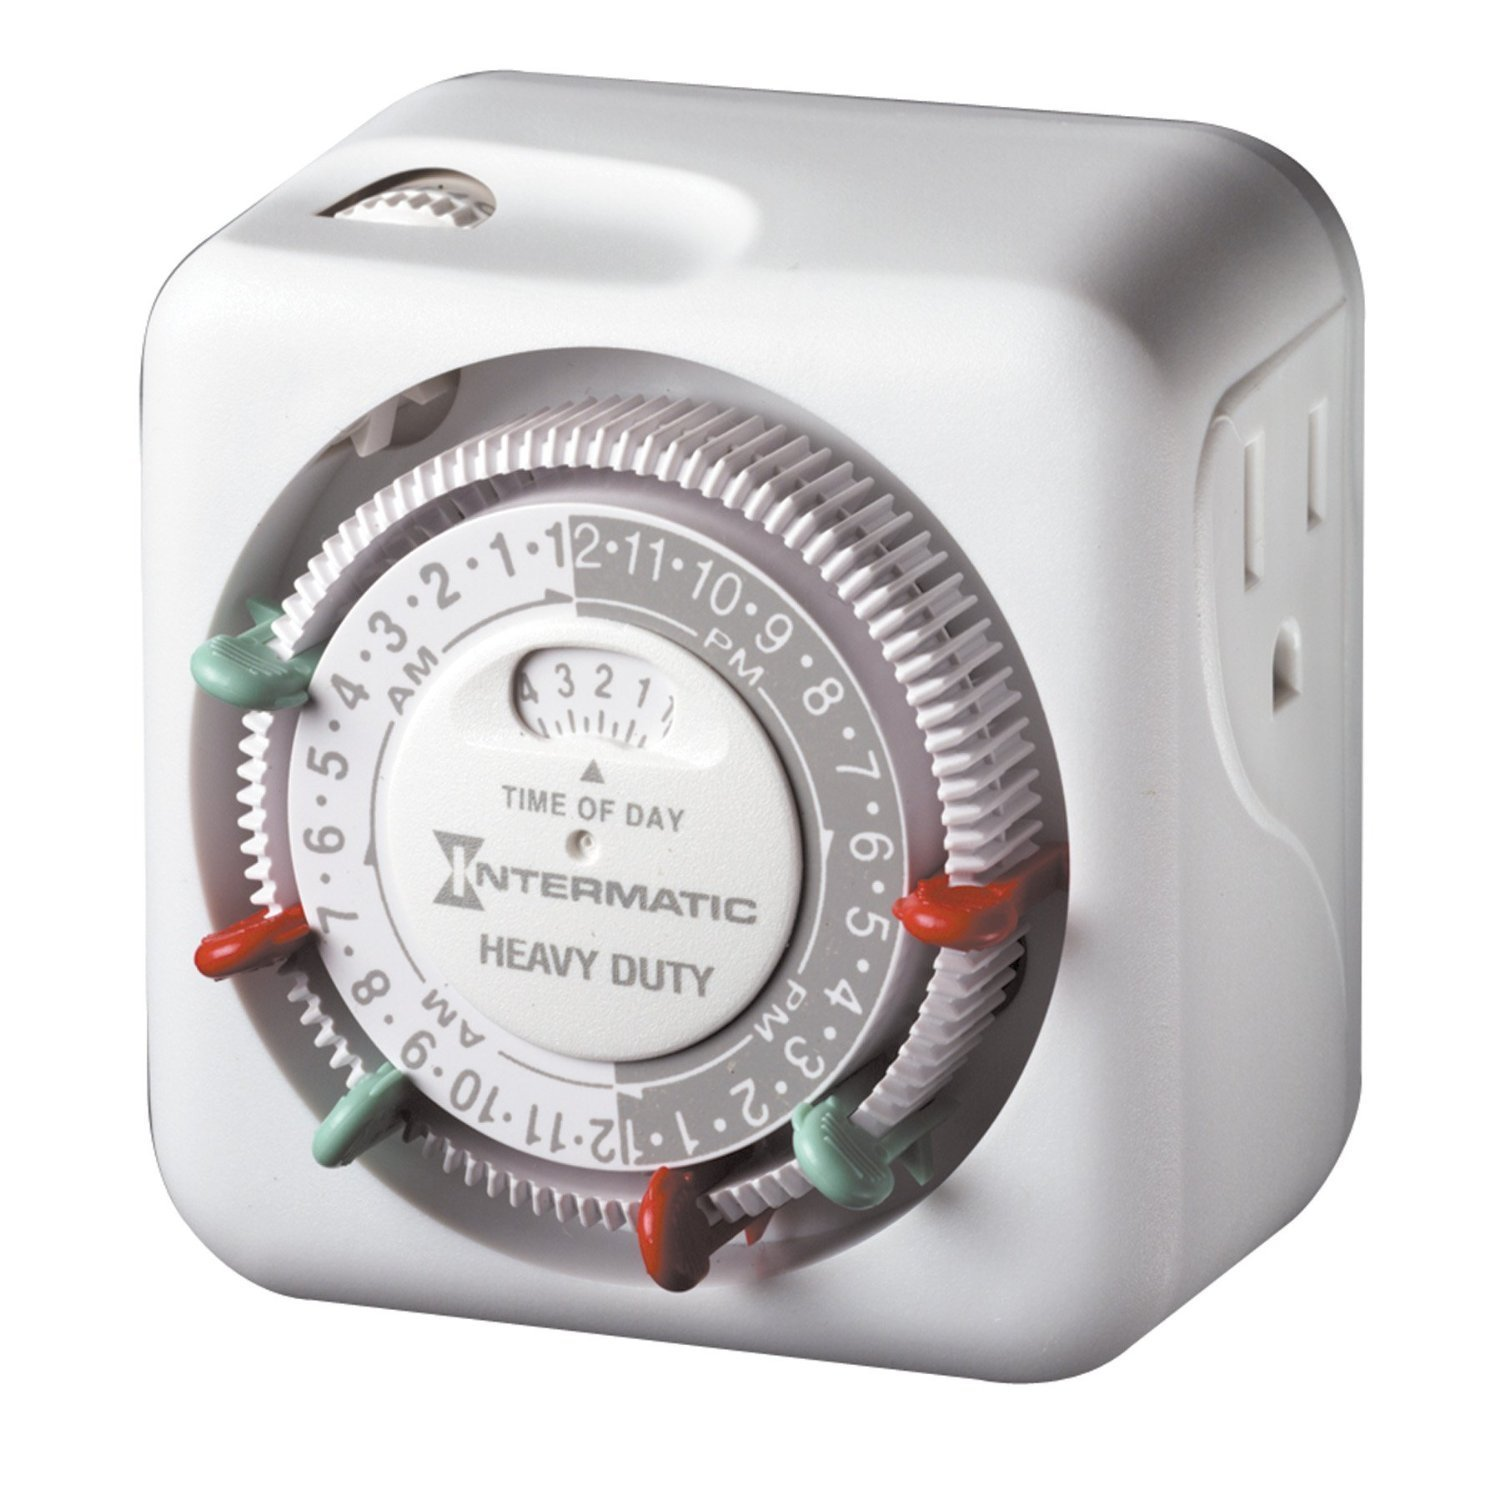 Intermatic TN311 15 Amp Heavy Duty Grounded Timer - with Extra Replacement Tripper (2 Red & 2 Green)